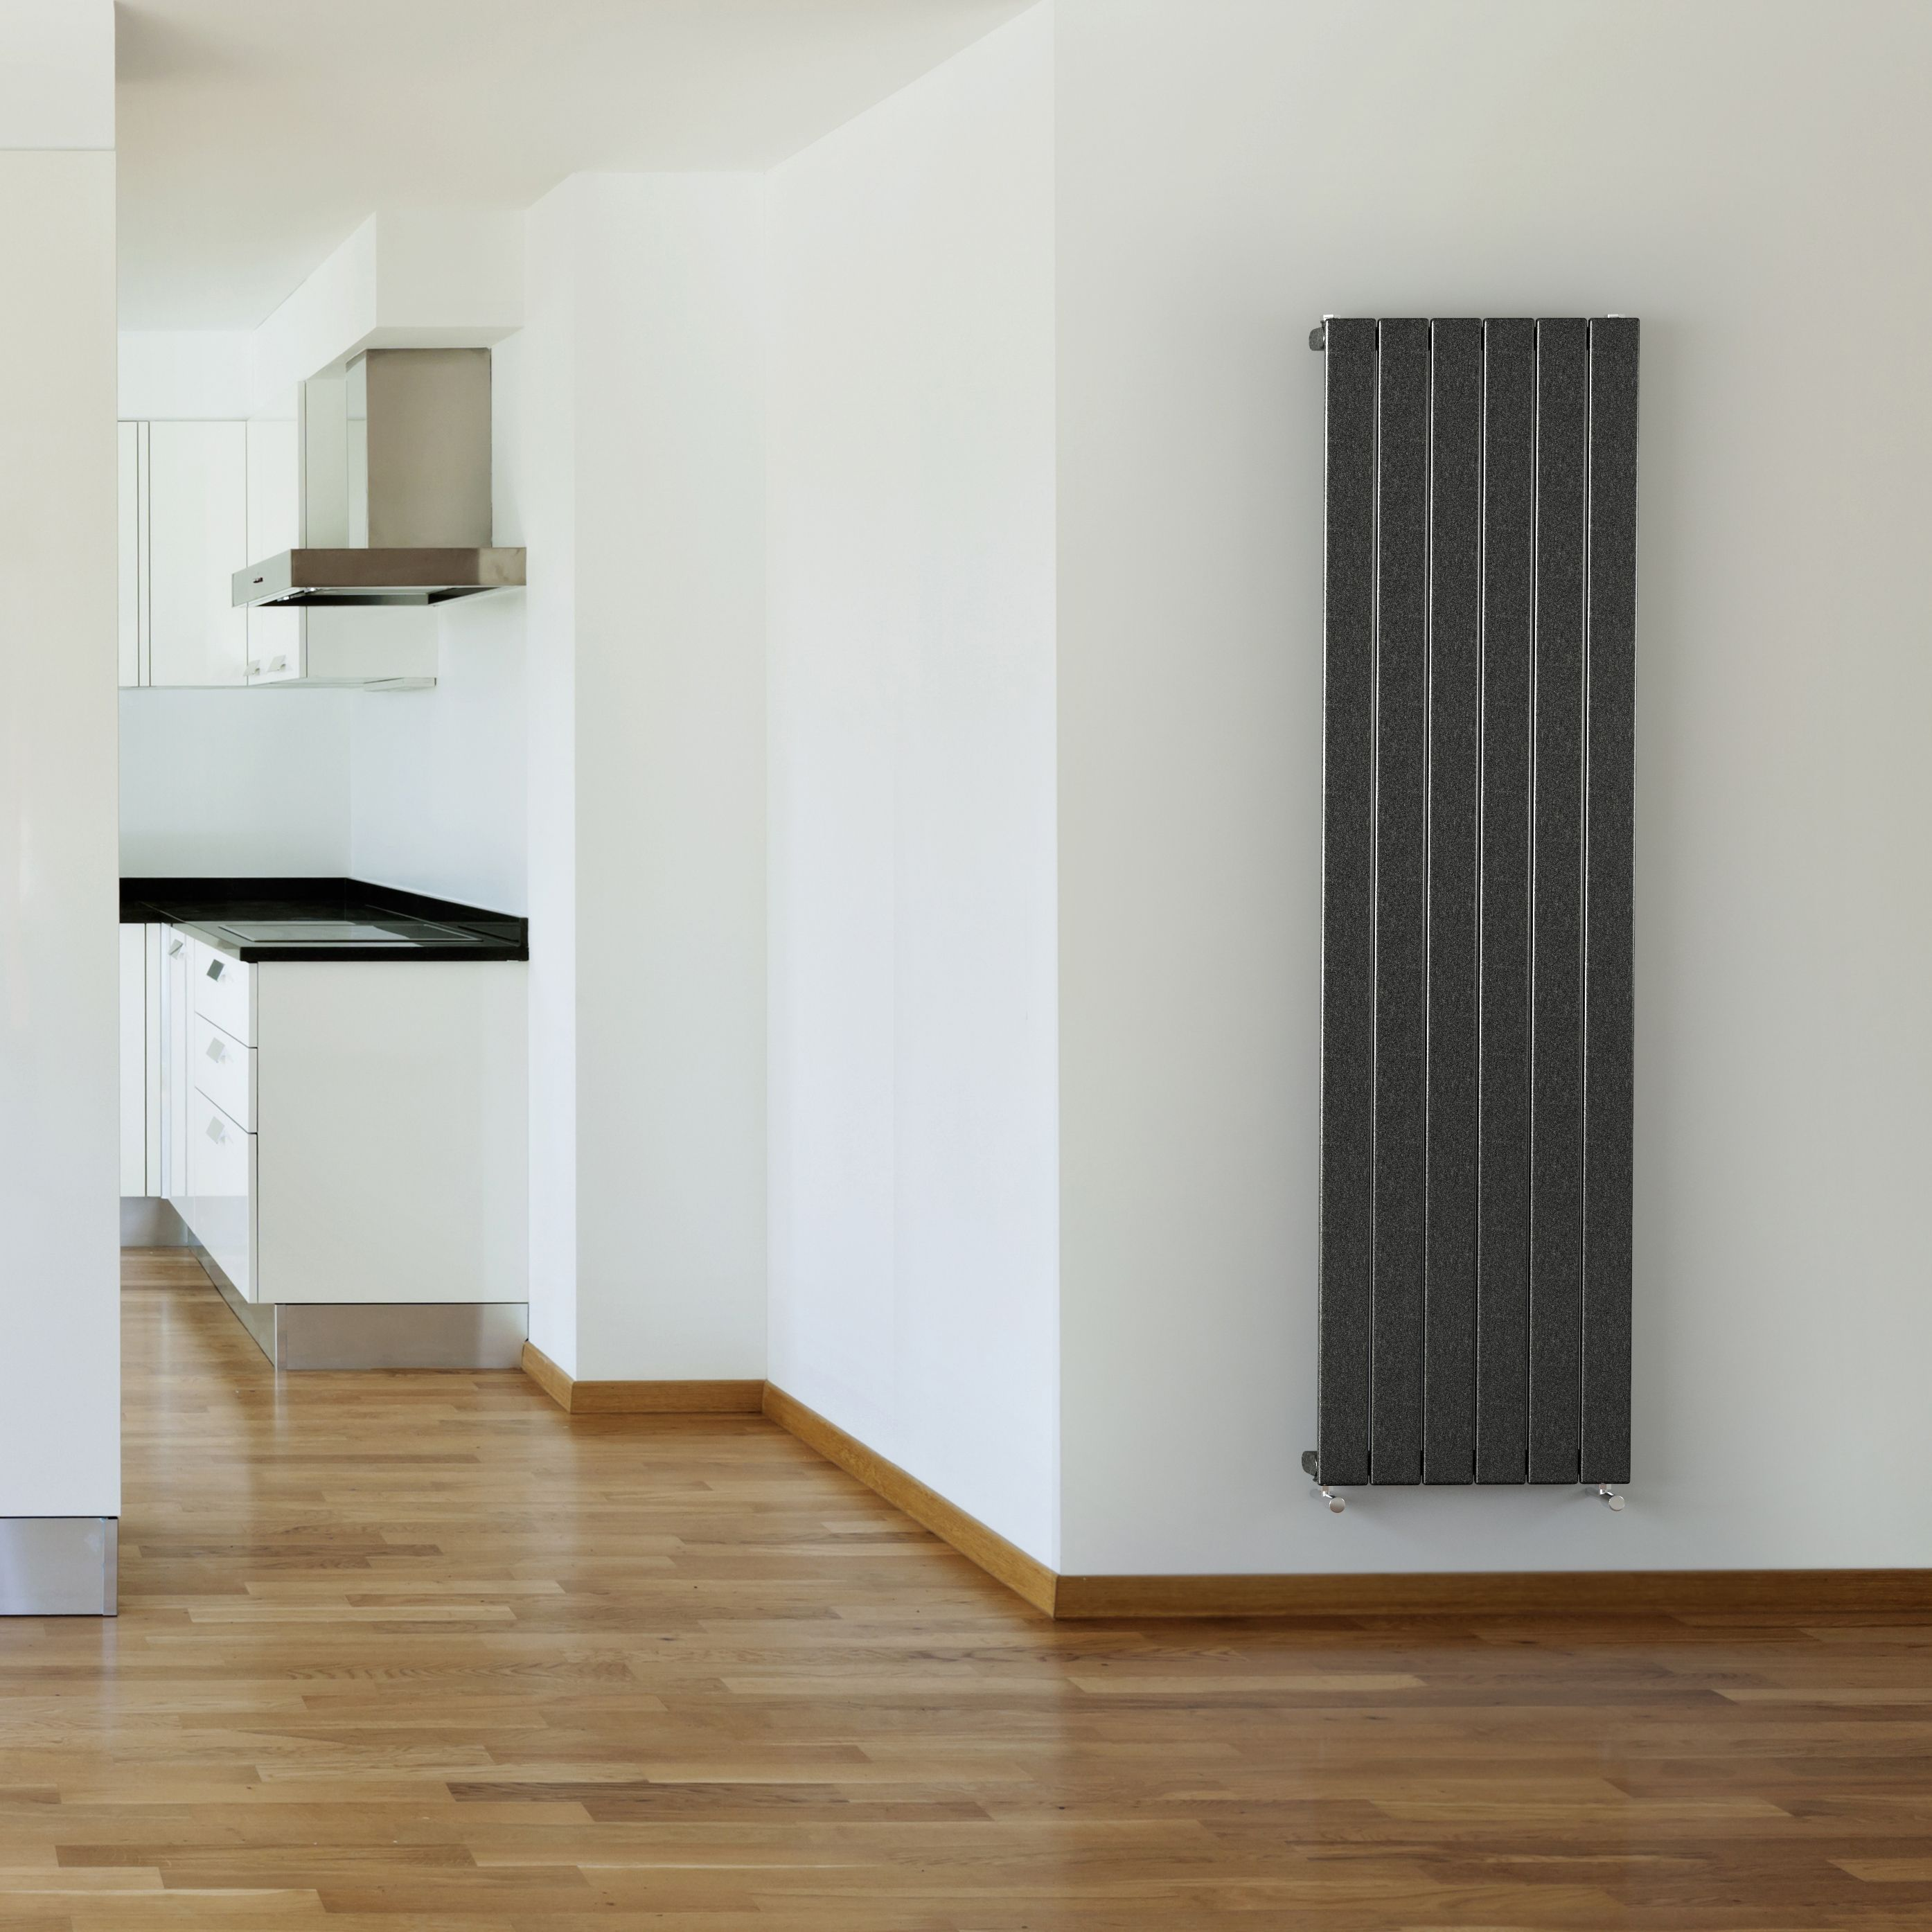 Seren Égalrad Type 10 single Designer panel radiator